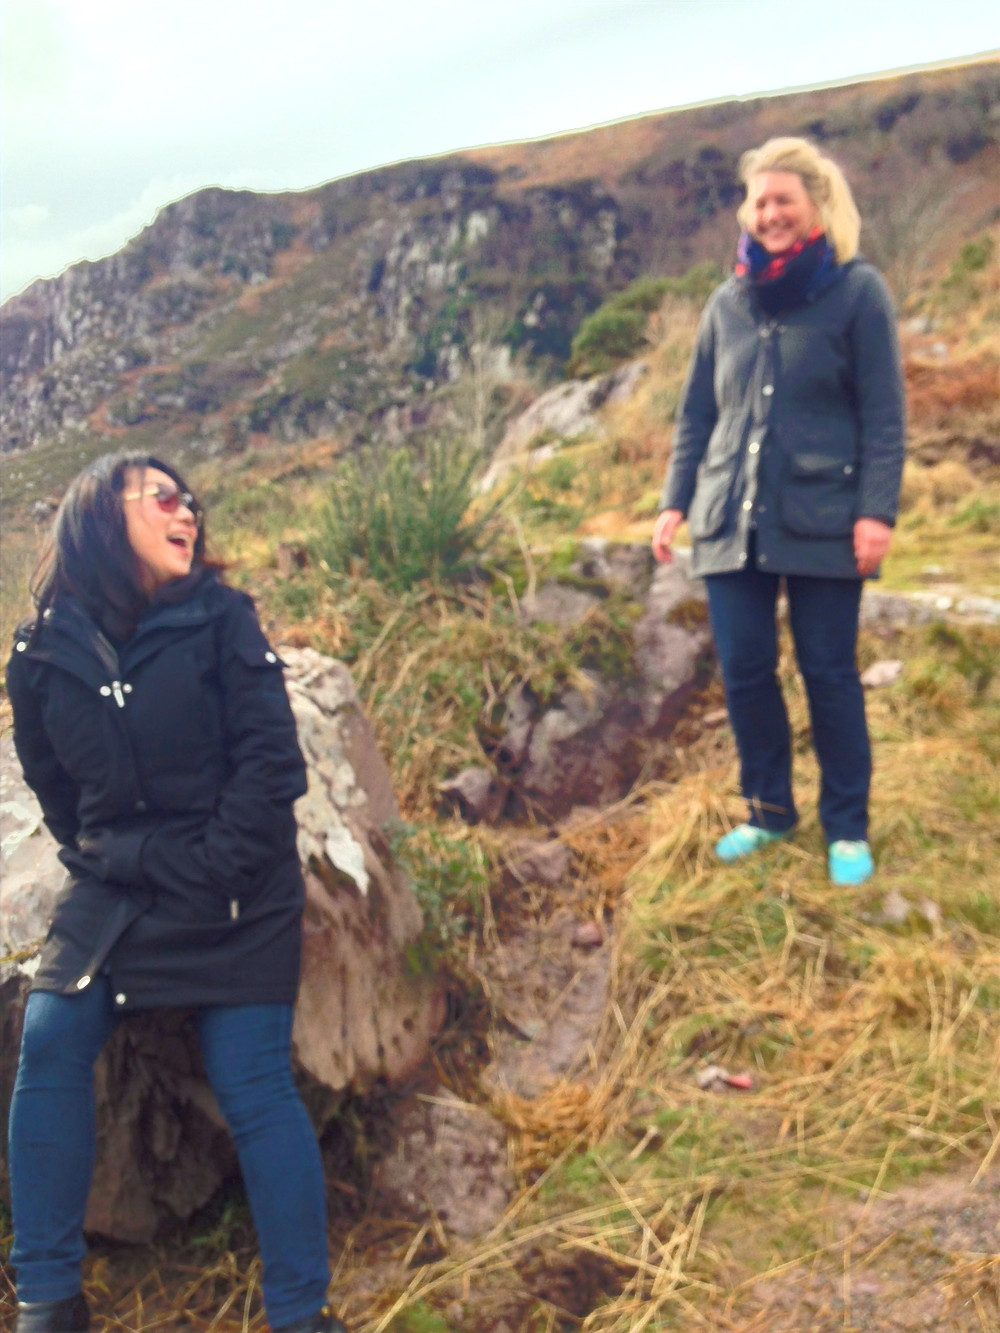 Two women, one Asian and the other Swedish, enjoying a moment at the Gap of Dunloe in Killarney Ireland